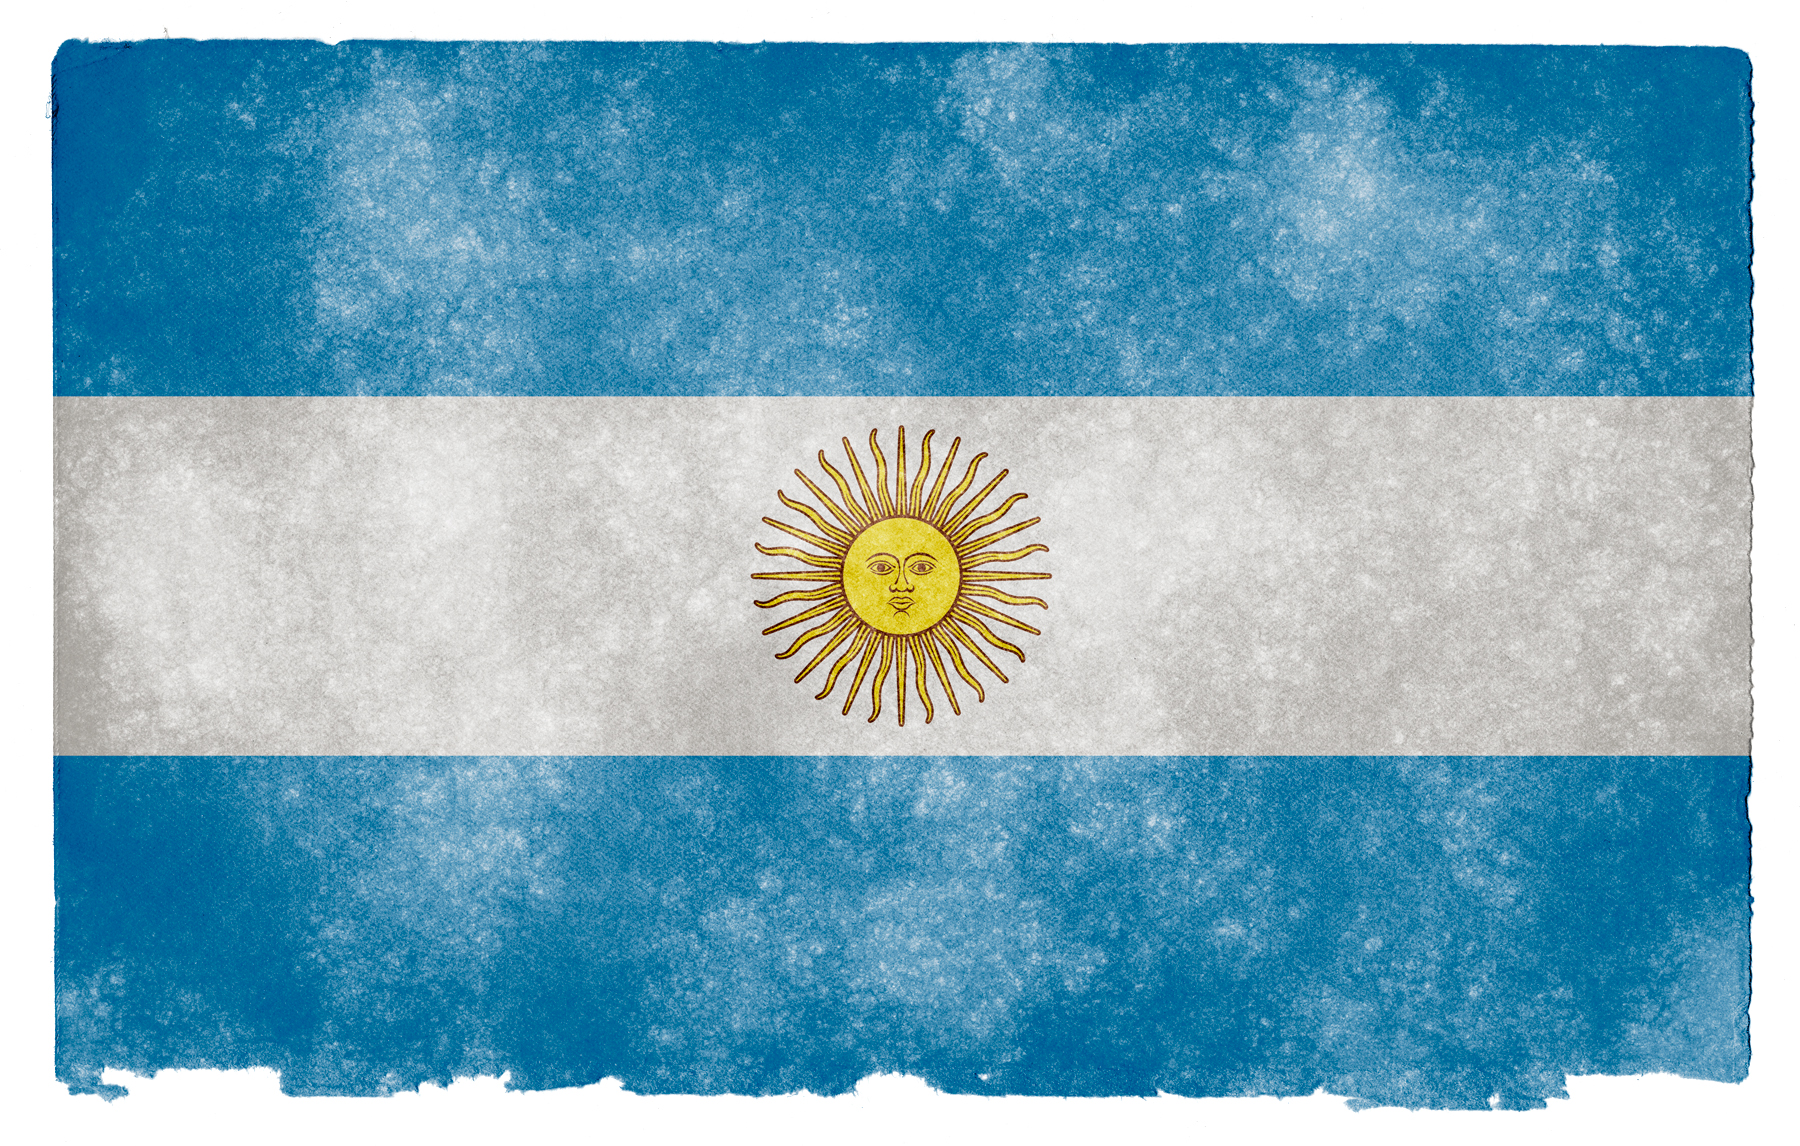 Free Photo Argentina Grunge Flag Proud Picture Pride Free